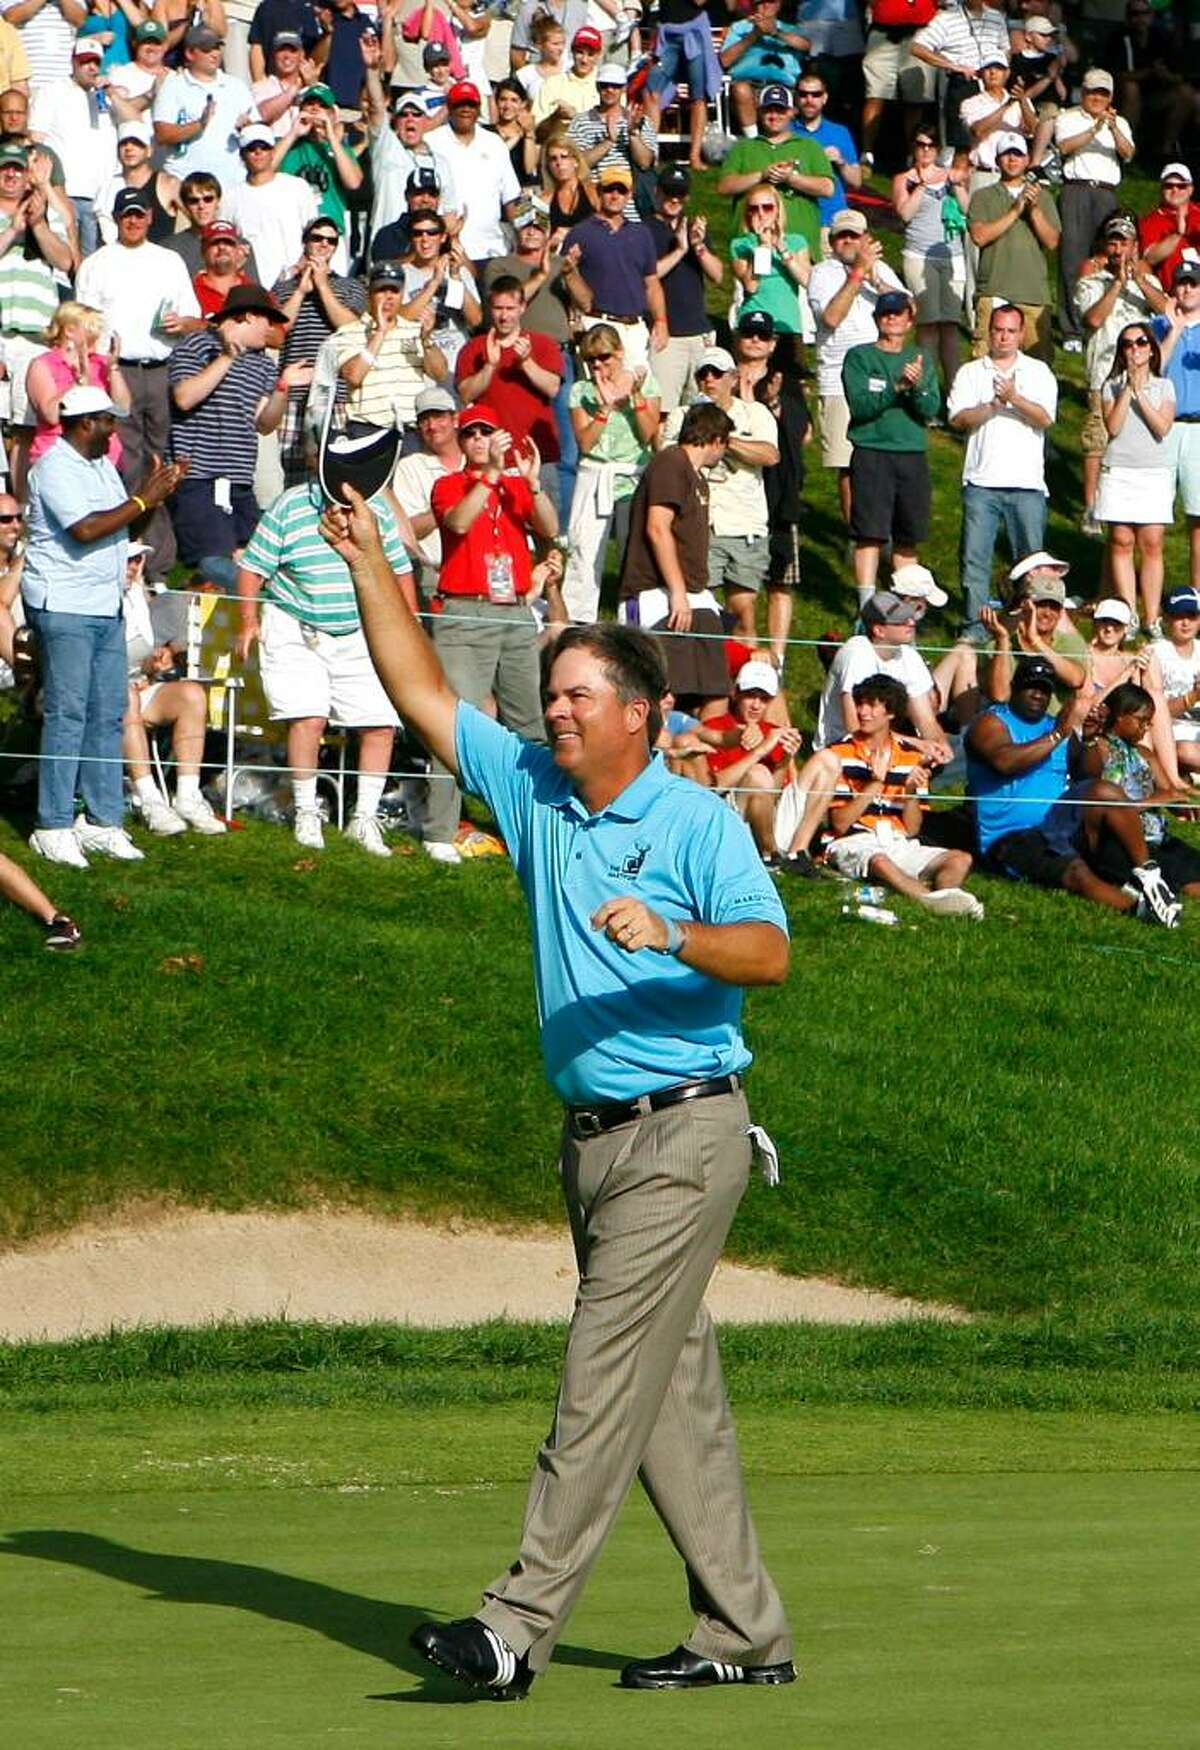 CROMWELL, CT - JUNE 28: Kenny Perry celebrates winning the 2009 Travelers Championship at TPC River Highlands on June 28, 2009 in Cromwell, Connecticut. (Photo by Jim Rogash/Getty Images) *** Local Caption *** Kenny Perry